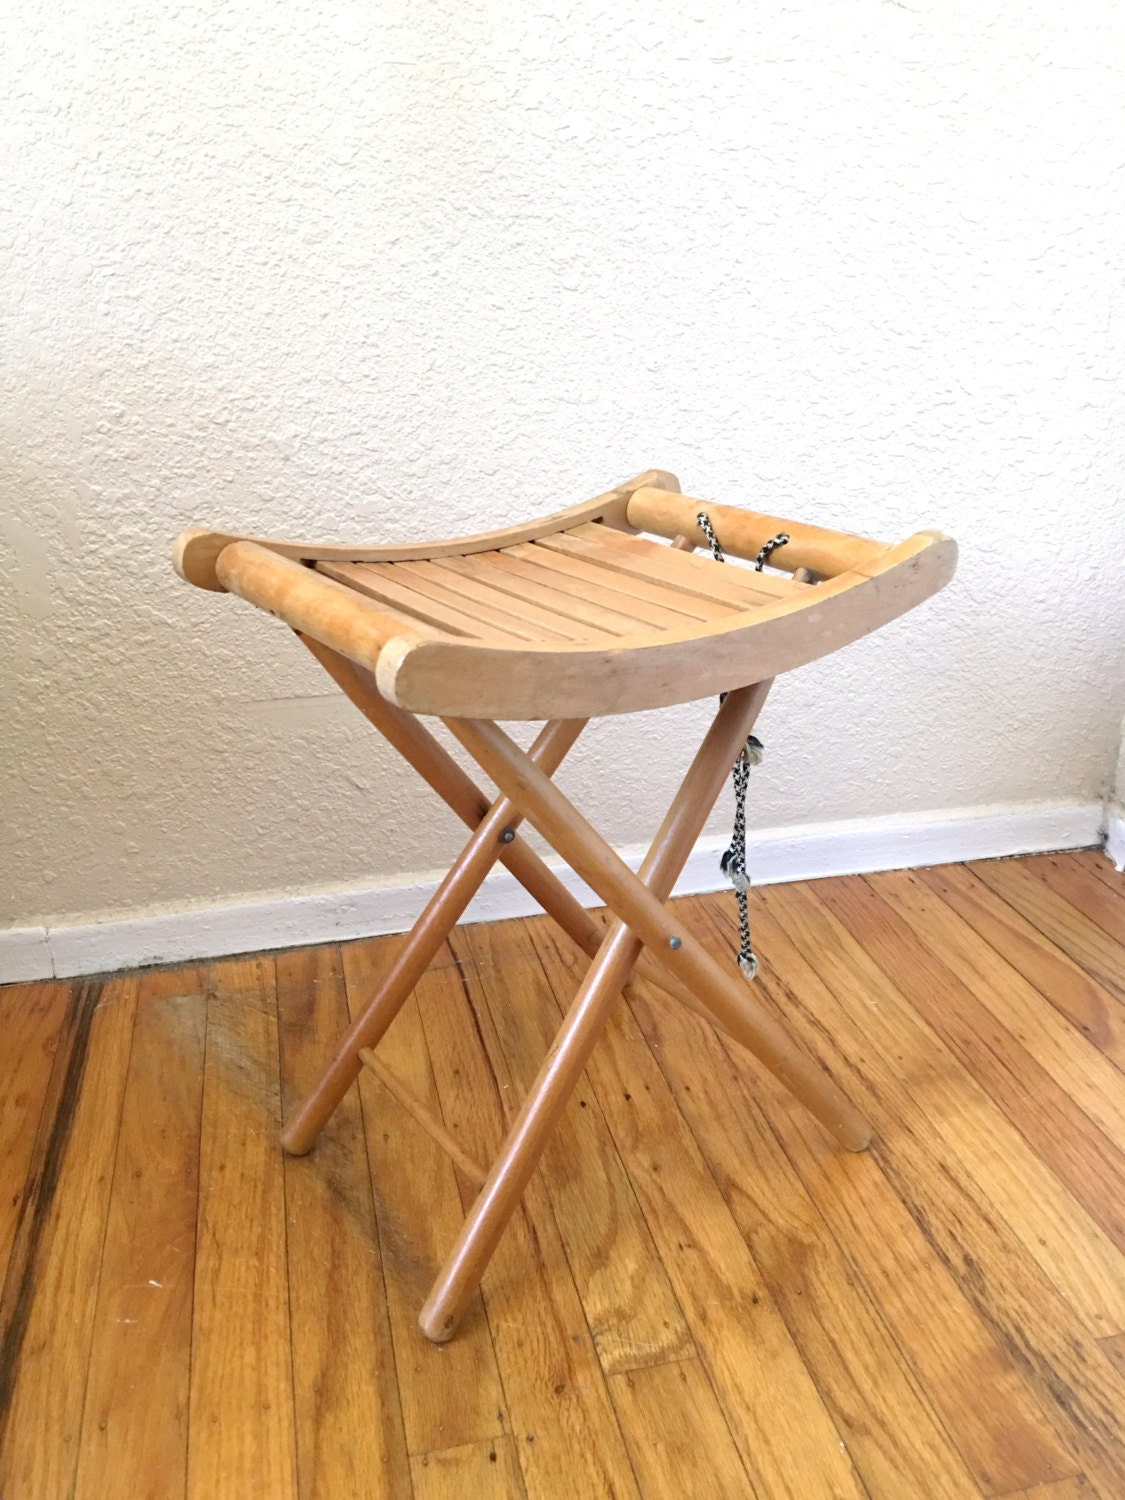 Astonishing Vintage Nevco Wooden Folding Stool Chair Plant Stand Onthecornerstone Fun Painted Chair Ideas Images Onthecornerstoneorg